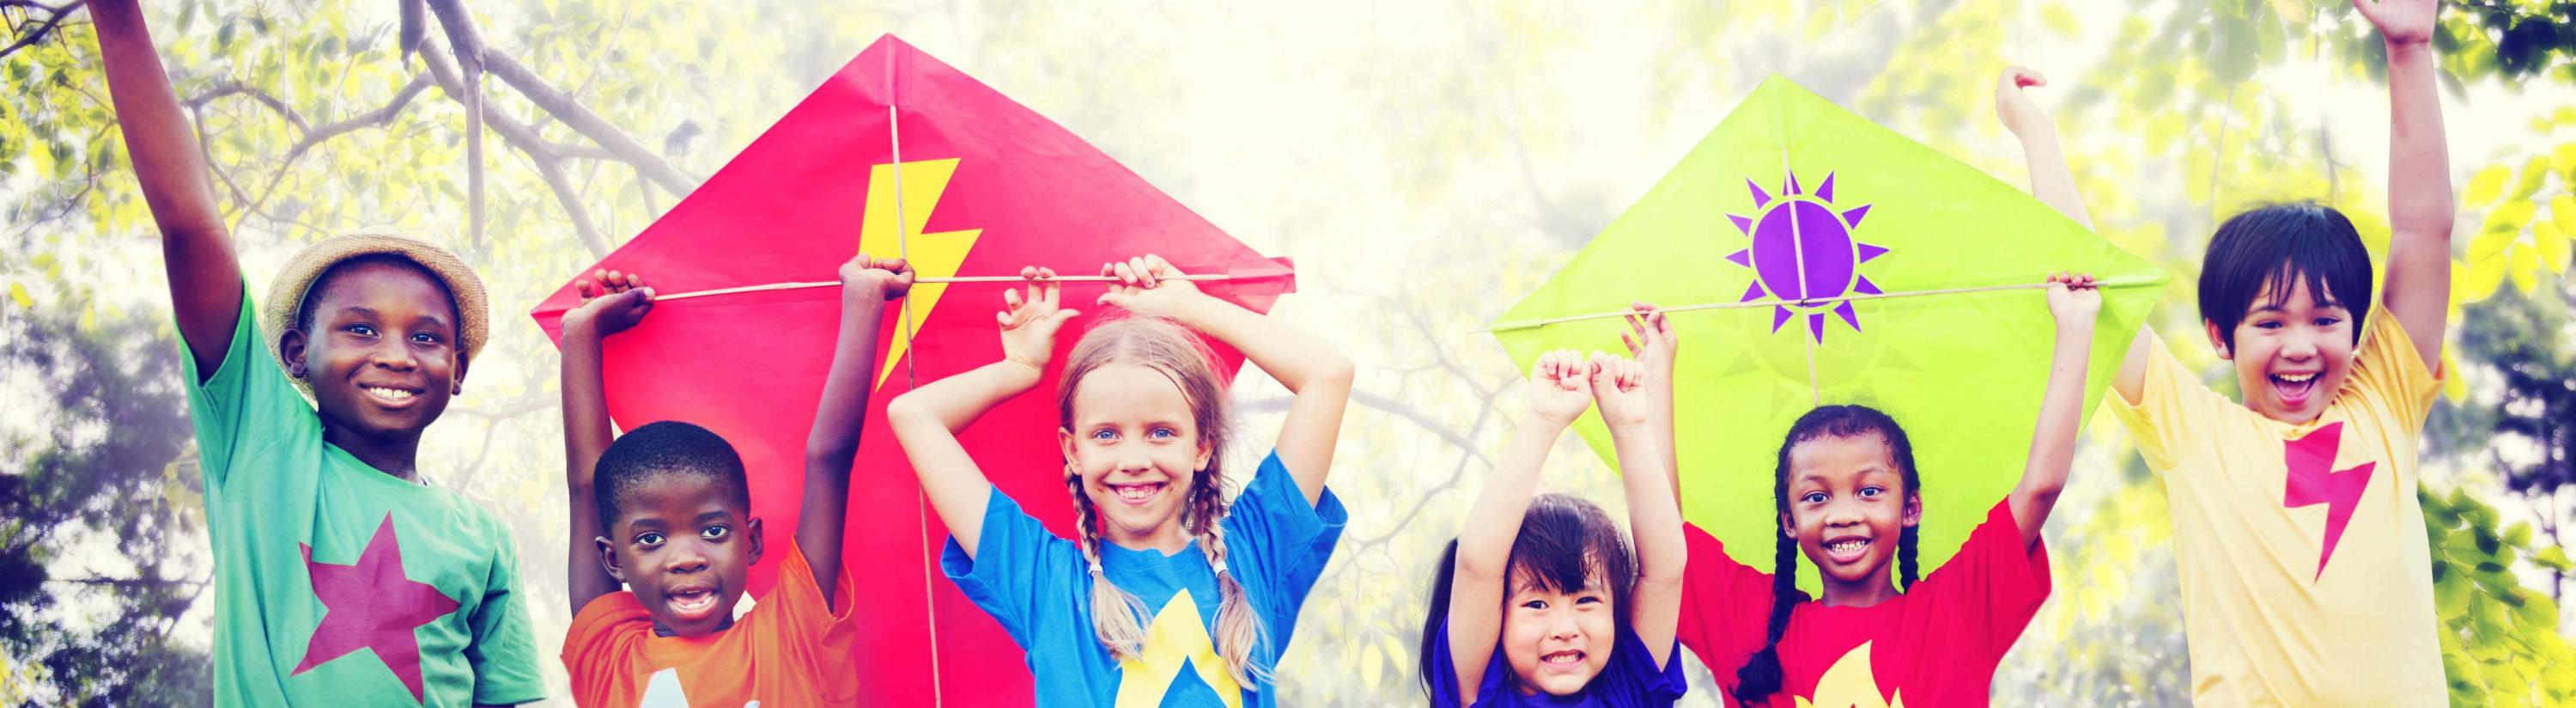 Banner image of children holding their hands up